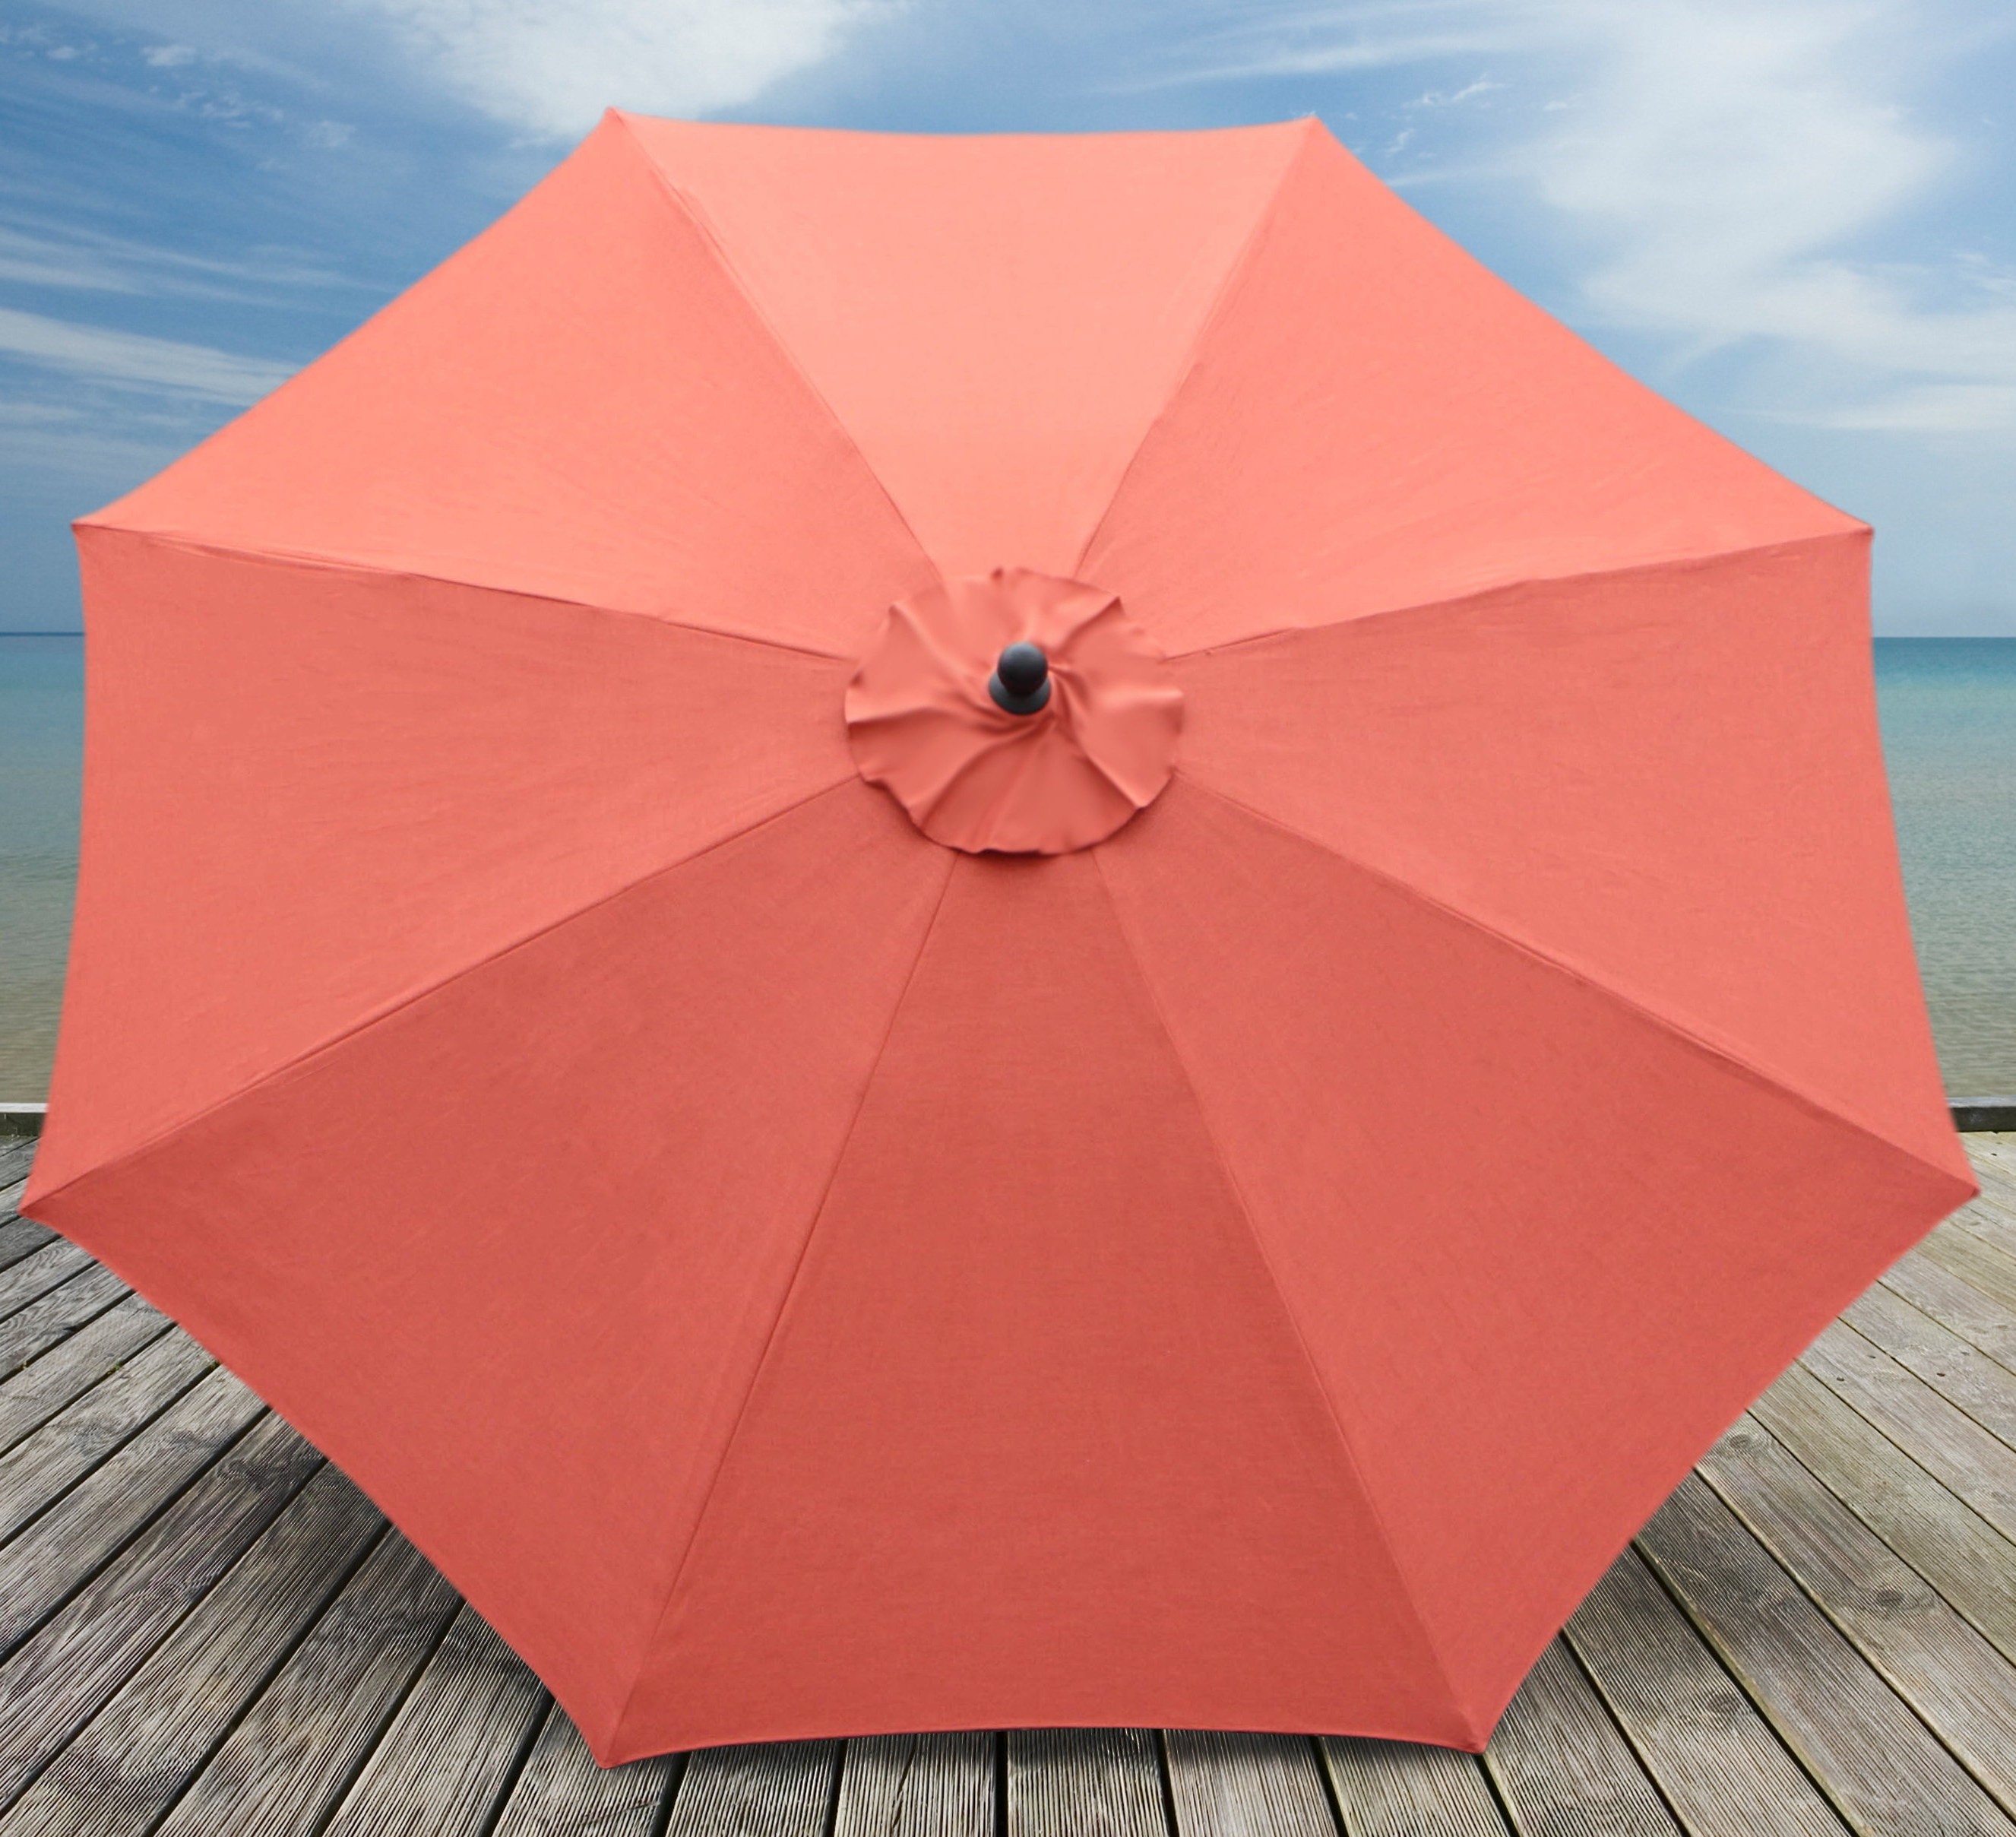 Mucci Madilyn 10' Market Sunbrella Umbrella With Most Popular Mucci Madilyn Market Sunbrella Umbrellas (Gallery 2 of 20)